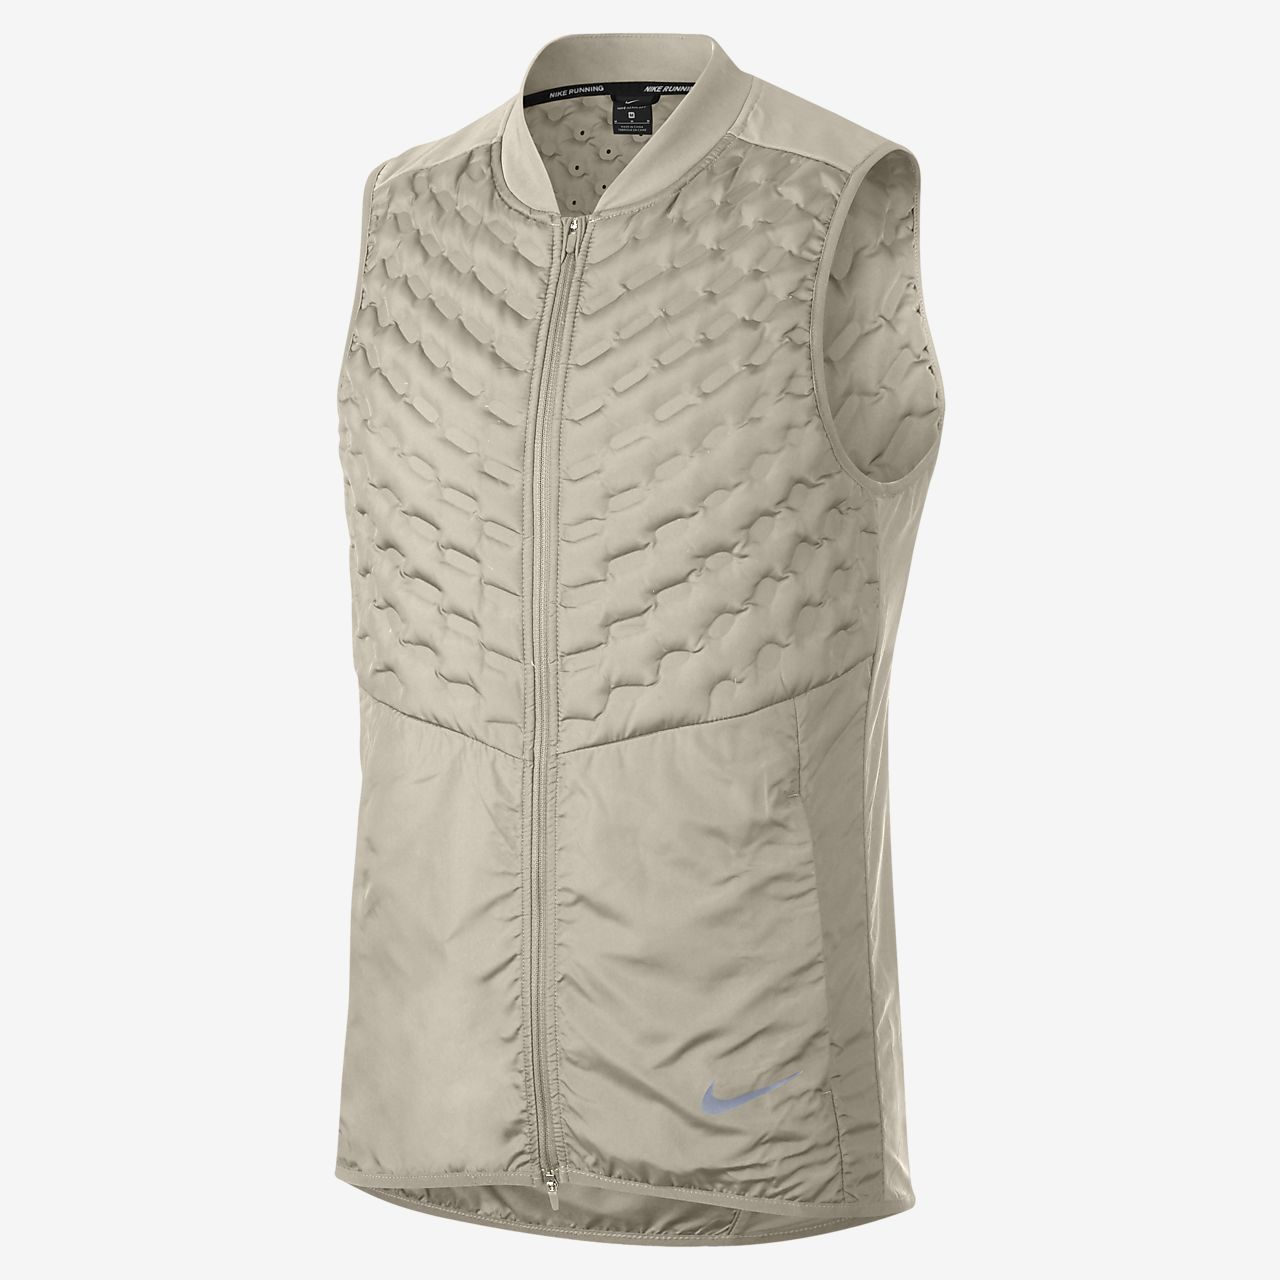 new high dirt cheap great fit Veste de running sans manches Nike AeroLoft pour Homme